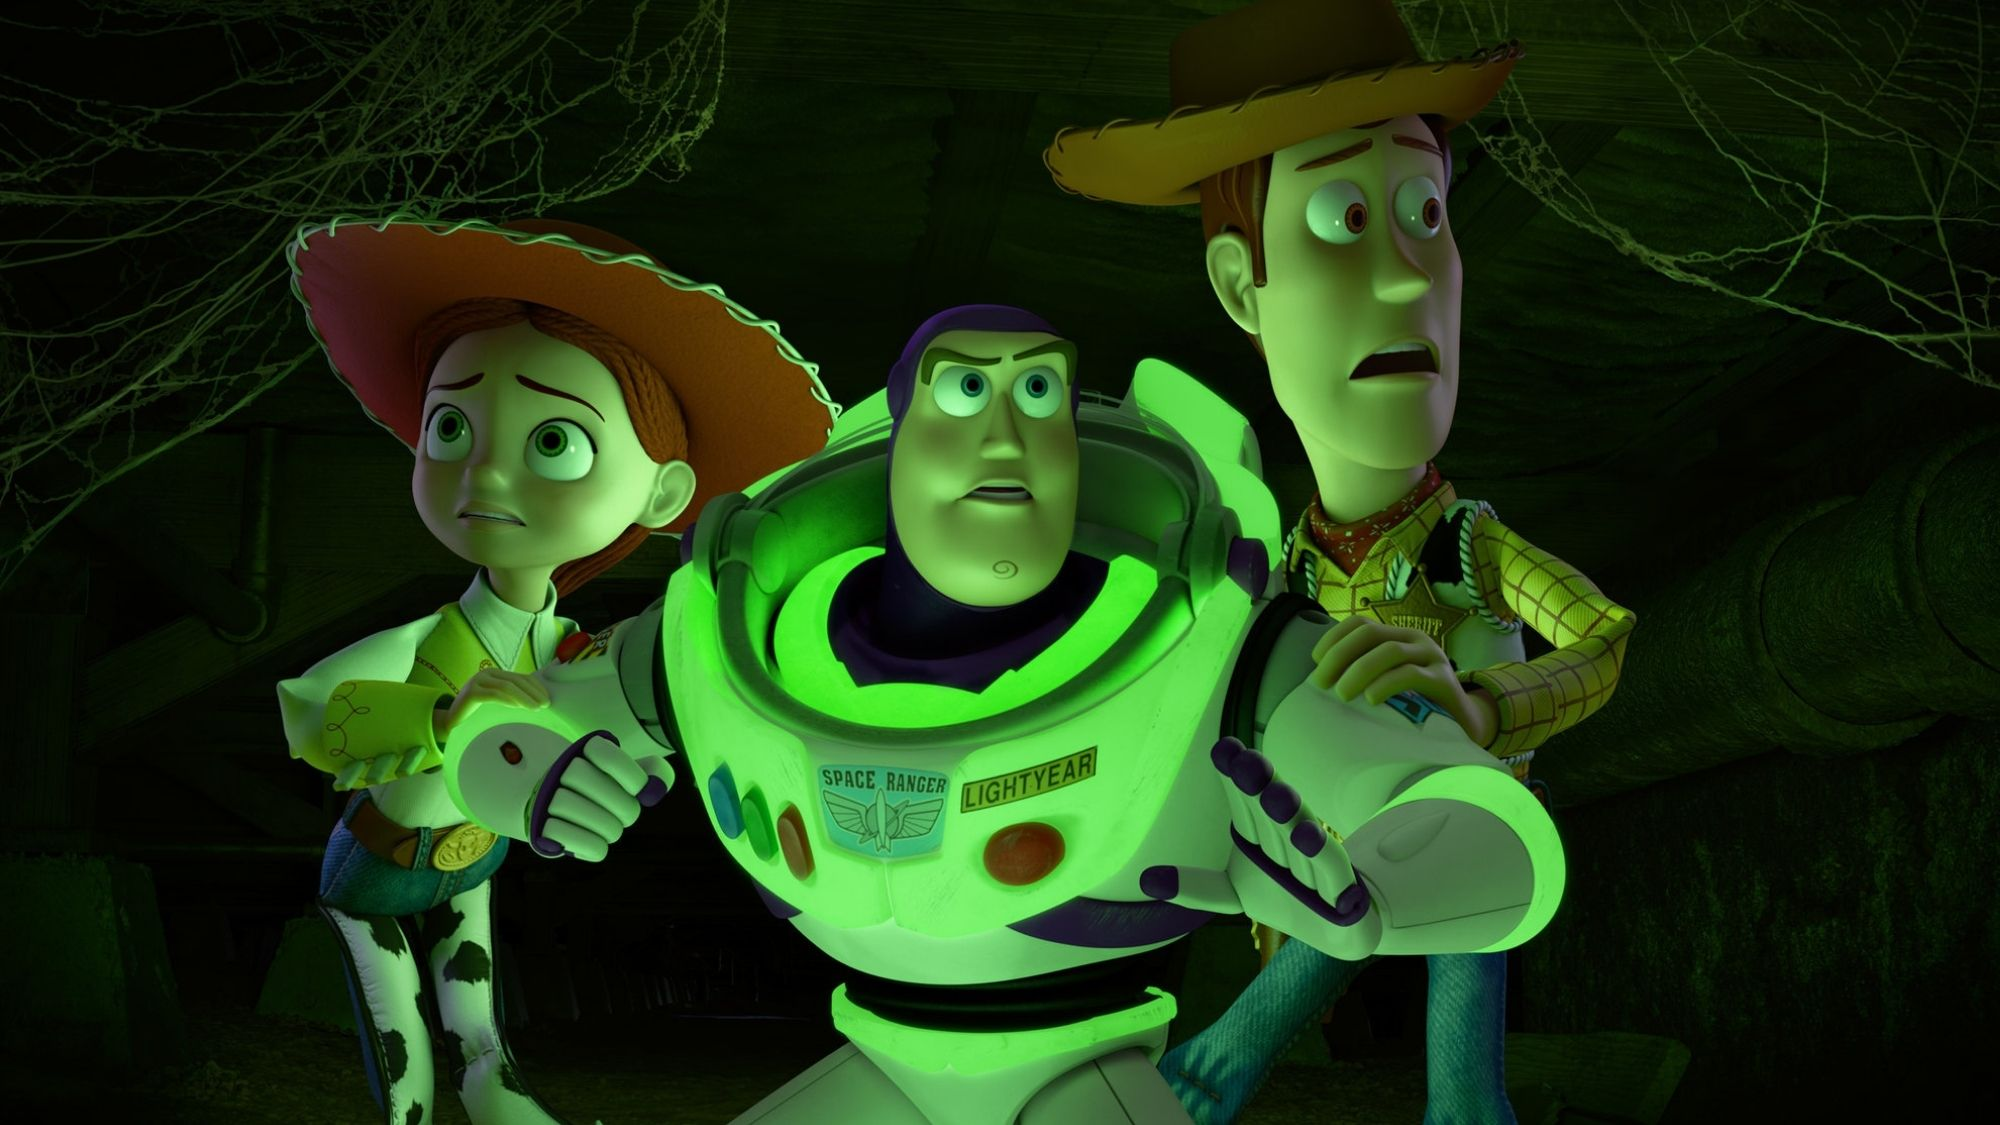 20 Halloween movies for children that won't keep them up all night